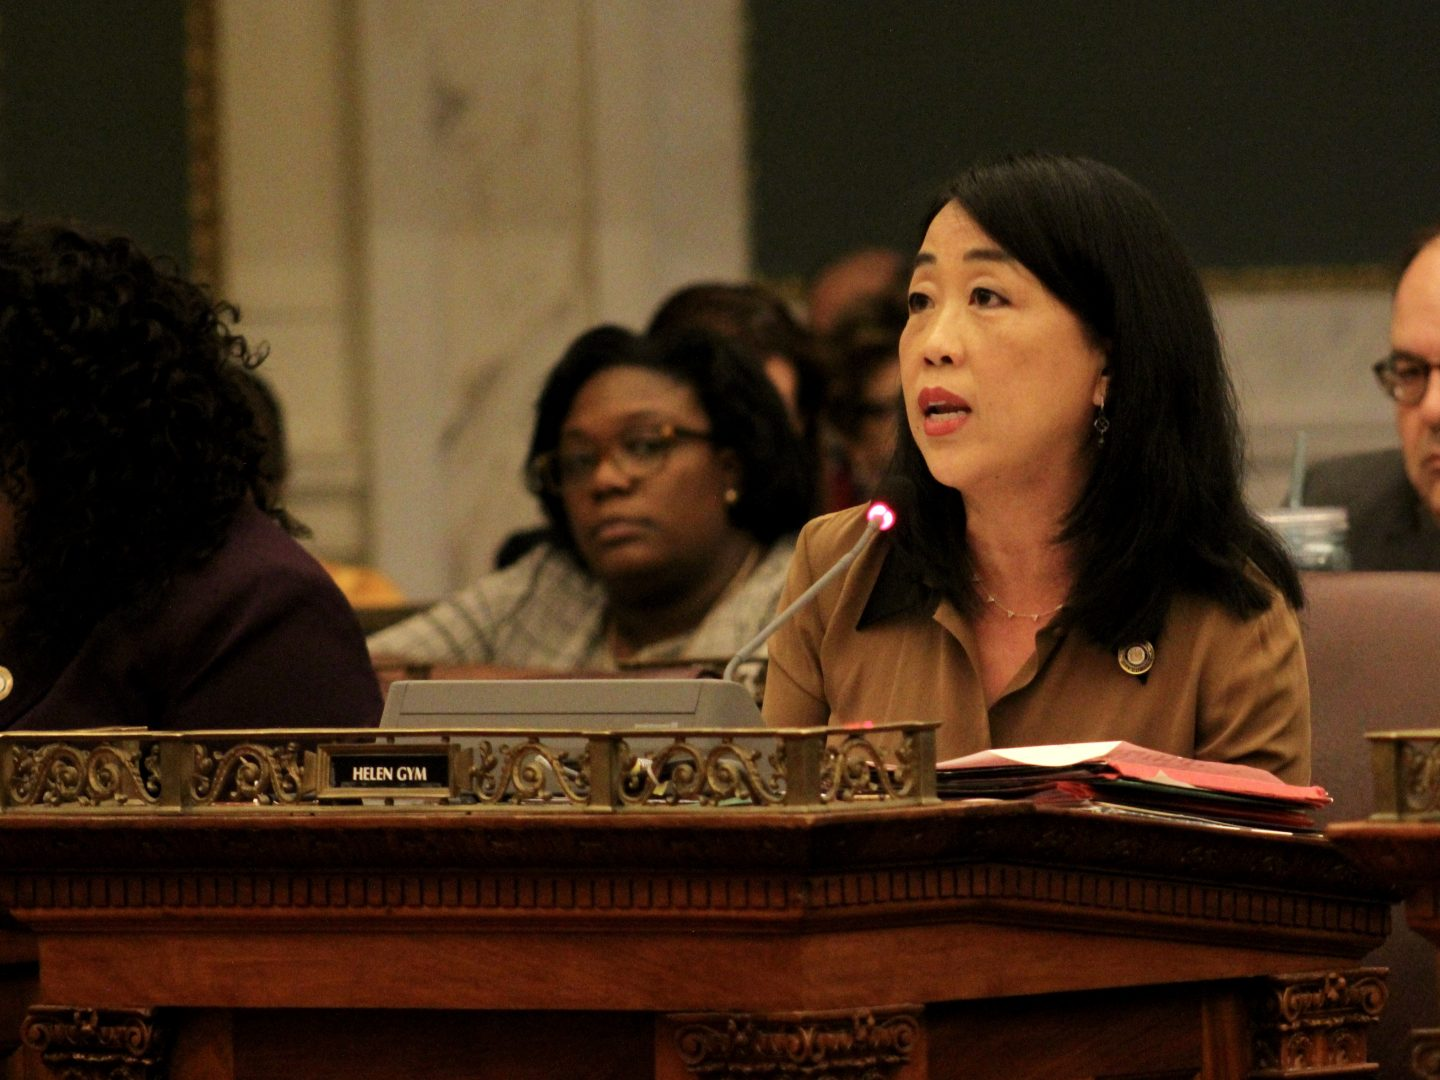 Councilmember Helen Gym speaks into a microphone.